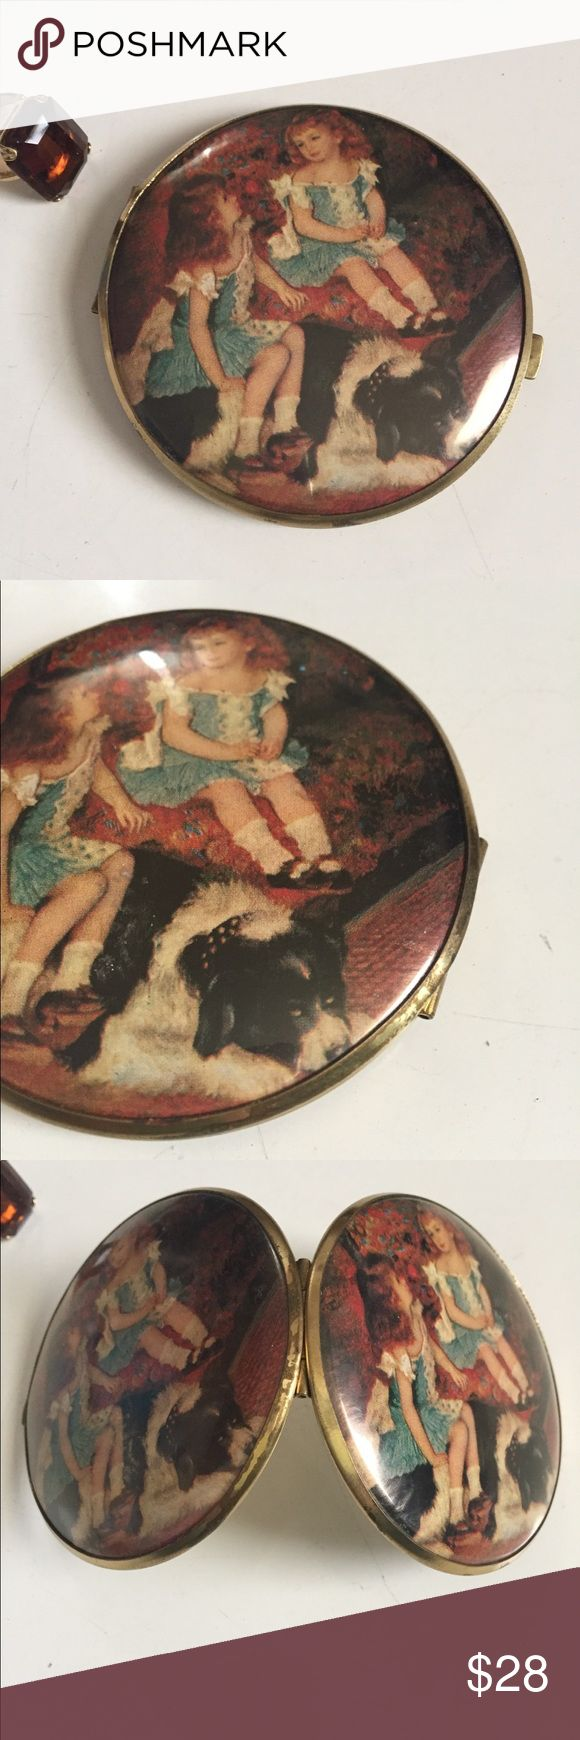 """LARGE TWO SIDED COMPACT WITH GIRLS & DOG IMAGE Large two sided mirrored compact I believe made in West Germany. You will see many of these German made compacts with varying prices according to condition, initial investment & overhead cost. The compact does show signs of wear as shown in the photos. The mirrors are in great shape despite it being a well used piece!! The two little girls sitting with their dog is the feature of this compact! 4"""" across. Makeup Brushes & Tools"""